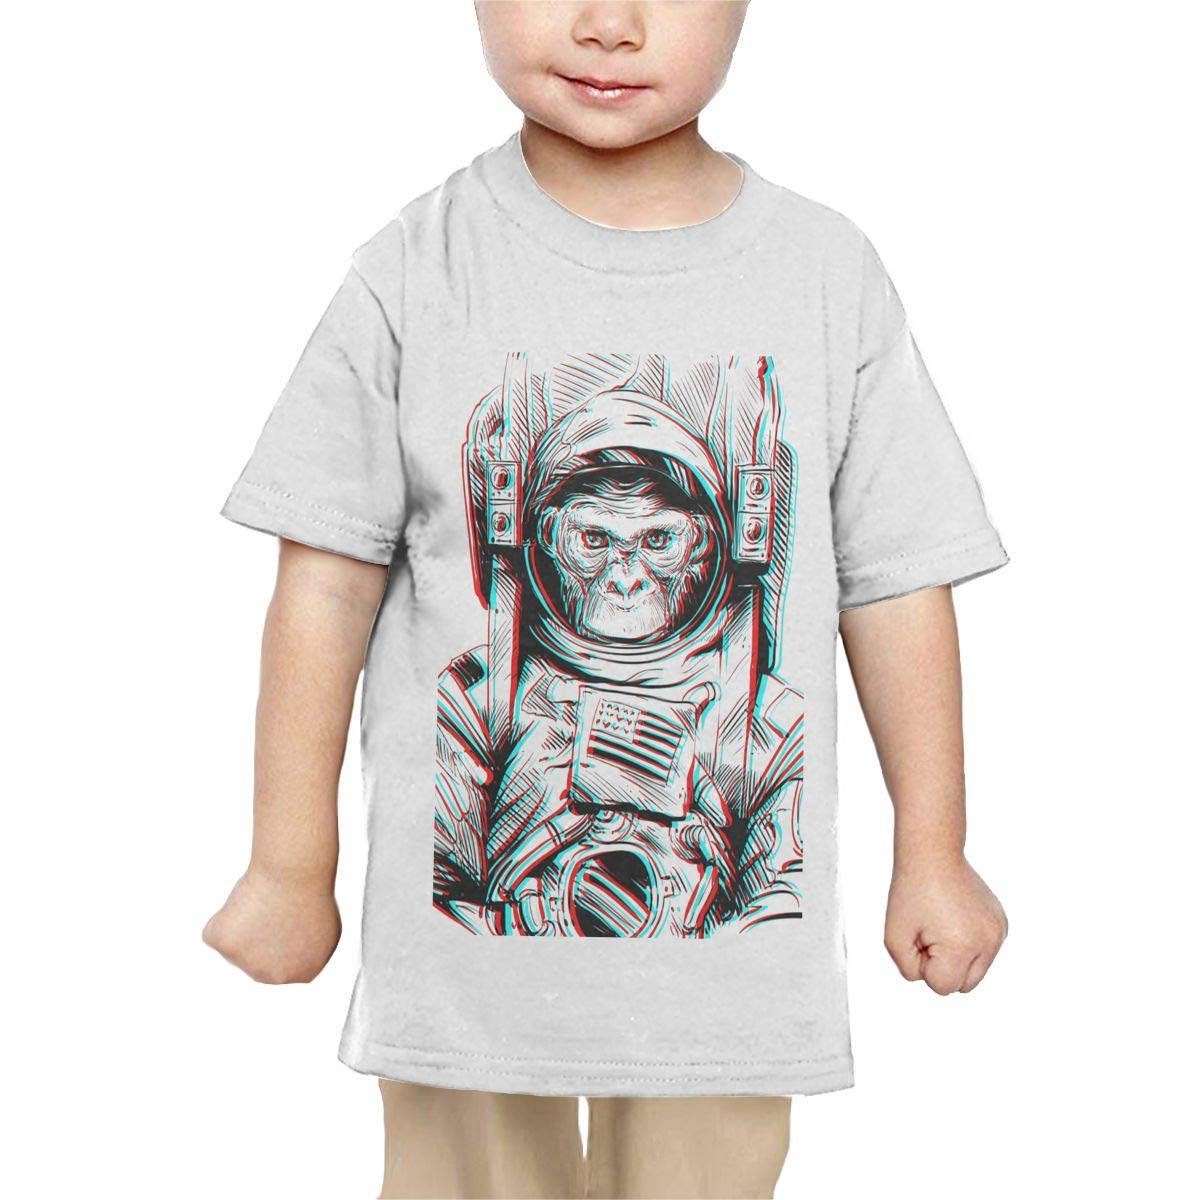 Chunmmmmm Monkey Astronaut Baby Unisex Short Sleeve Round Neck Cotton T-Shirts